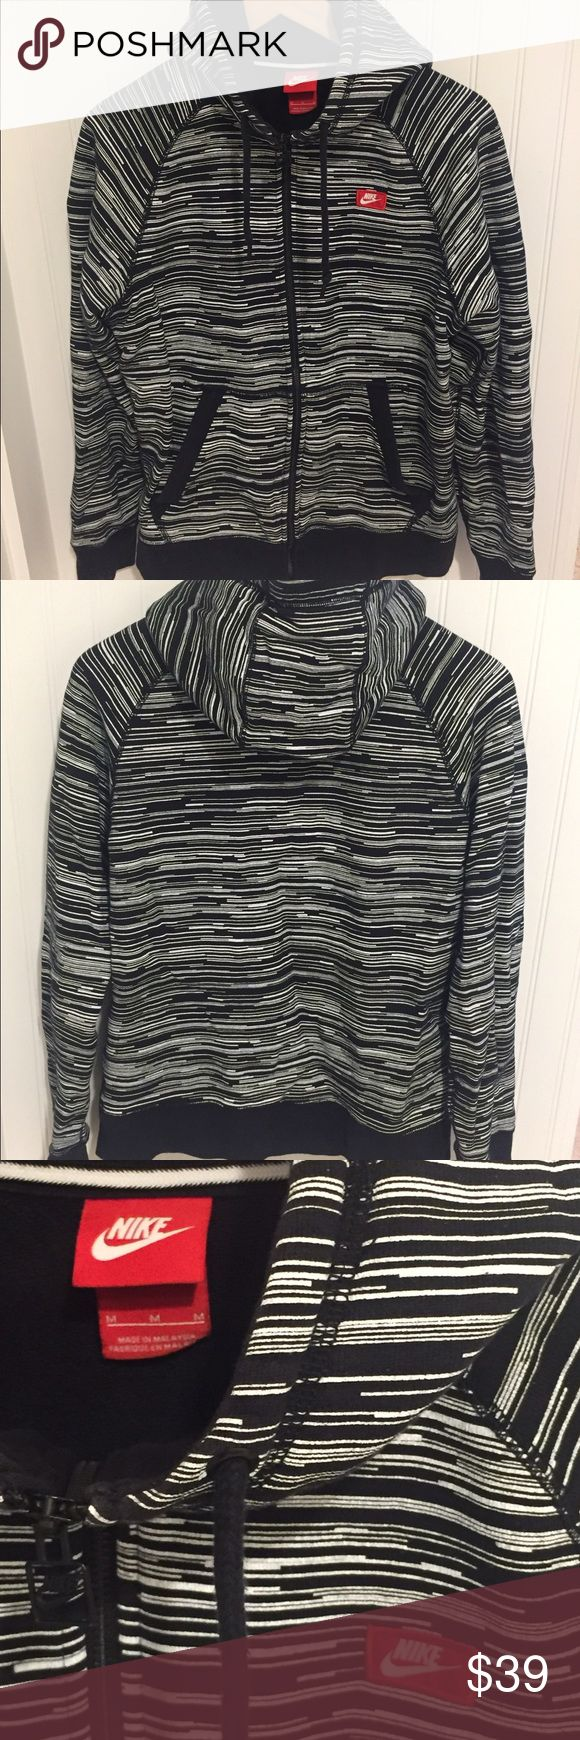 Nike black white stripe hoodie sweatshirt jacket M Size medium. Worn a few times but in excellent condition. See my closet for more great deals on designer items. 15% off a bundle of three or more items. Nike Tops Sweatshirts & Hoodies